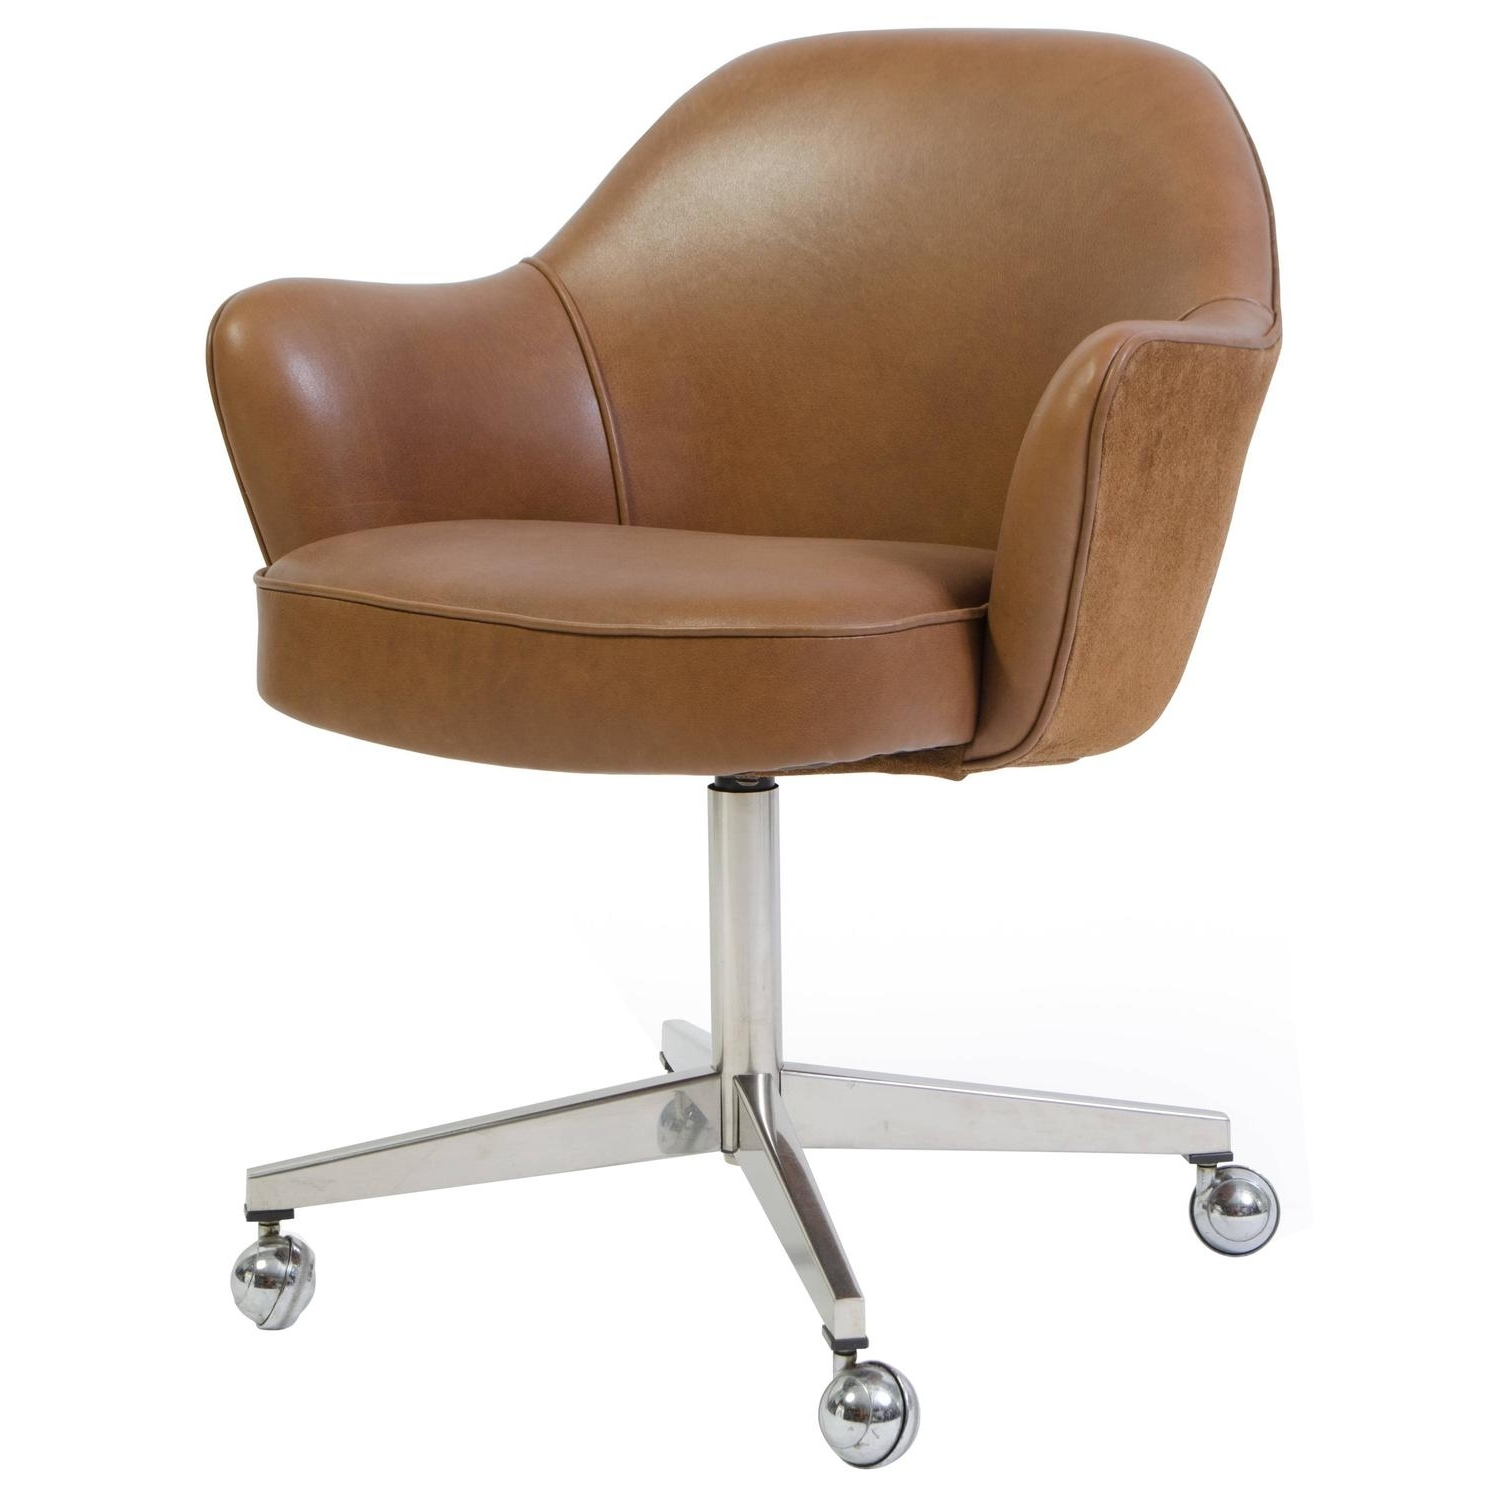 Newest Black Leather Faced Executive Office Chairs Regarding Chair : Office Star Leather Executive Office Chair Niceday Berlin (View 17 of 20)